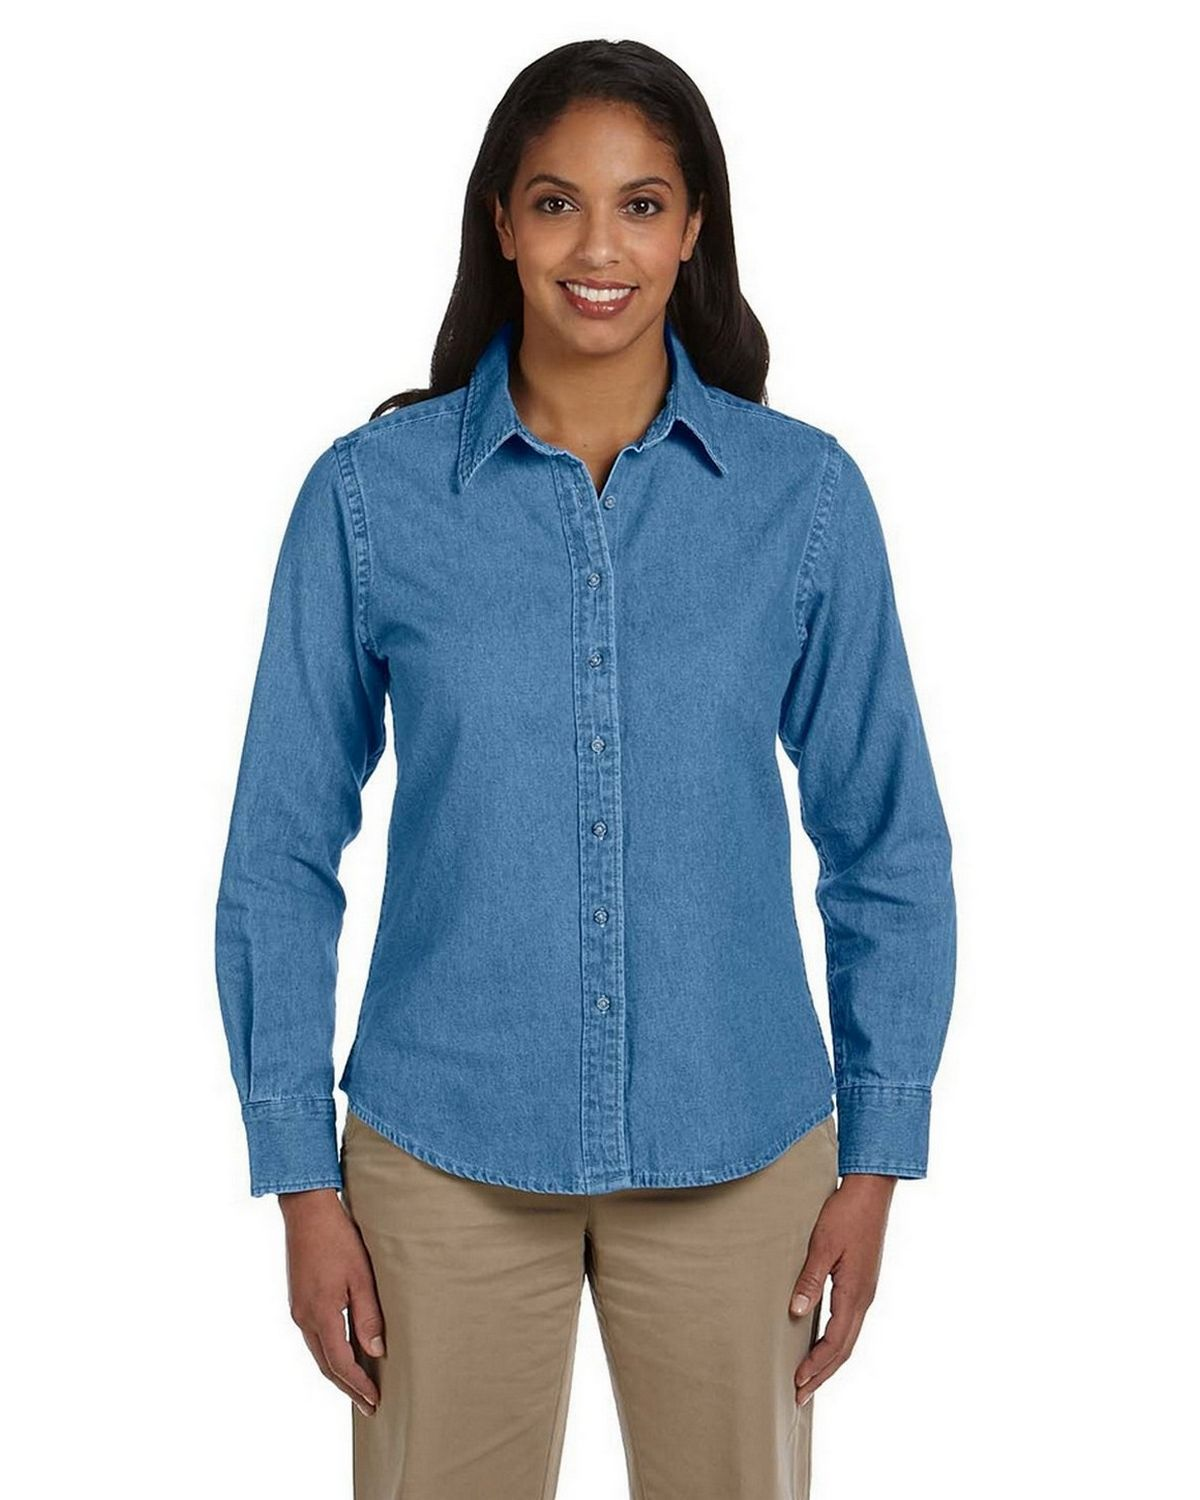 f3c70878572be Ladies Long Sleeve Denim Shirt Dress - Joe Maloy